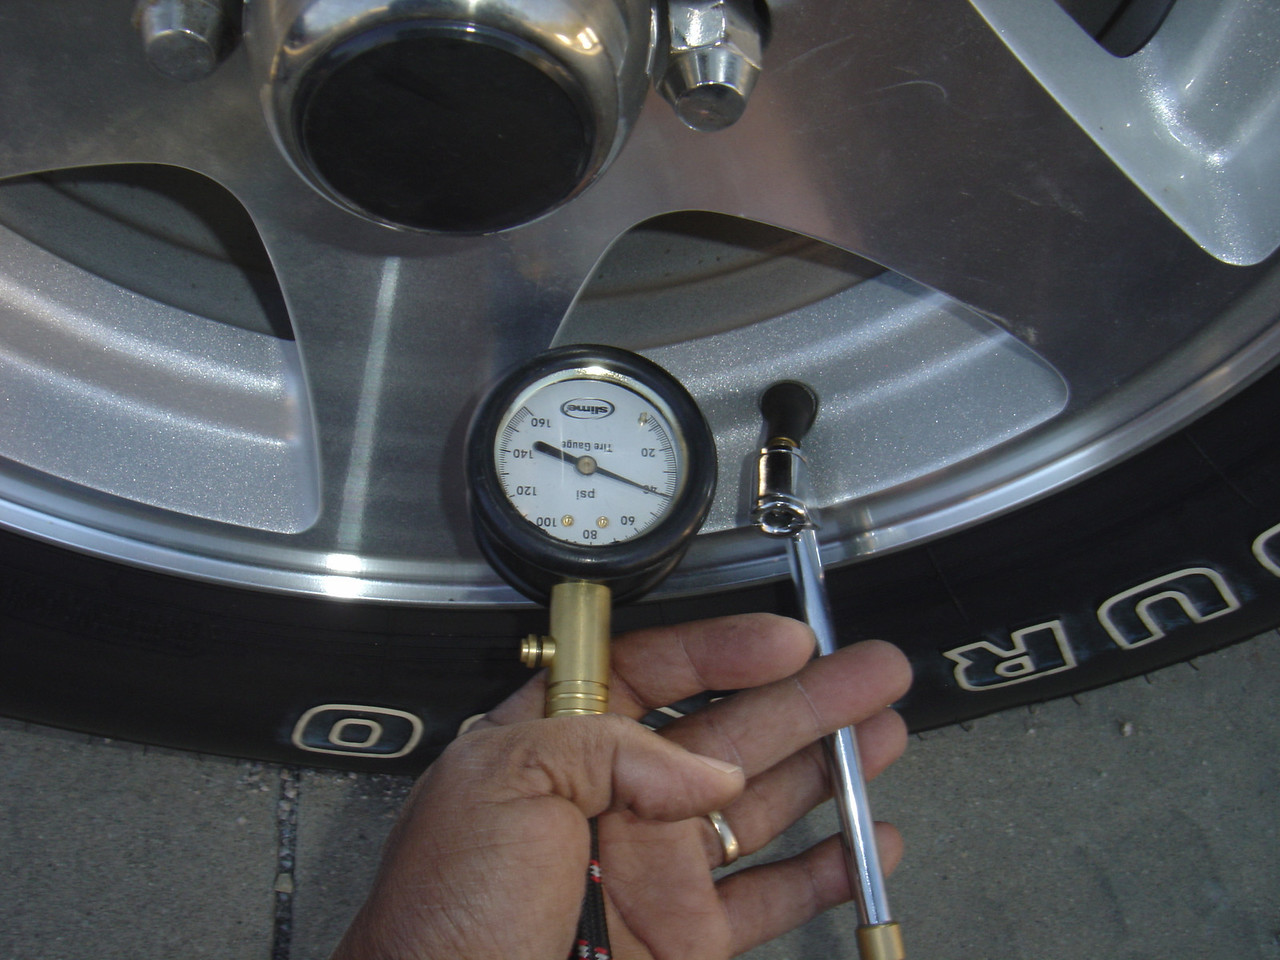 Check spare tire pressure and inflate in needed